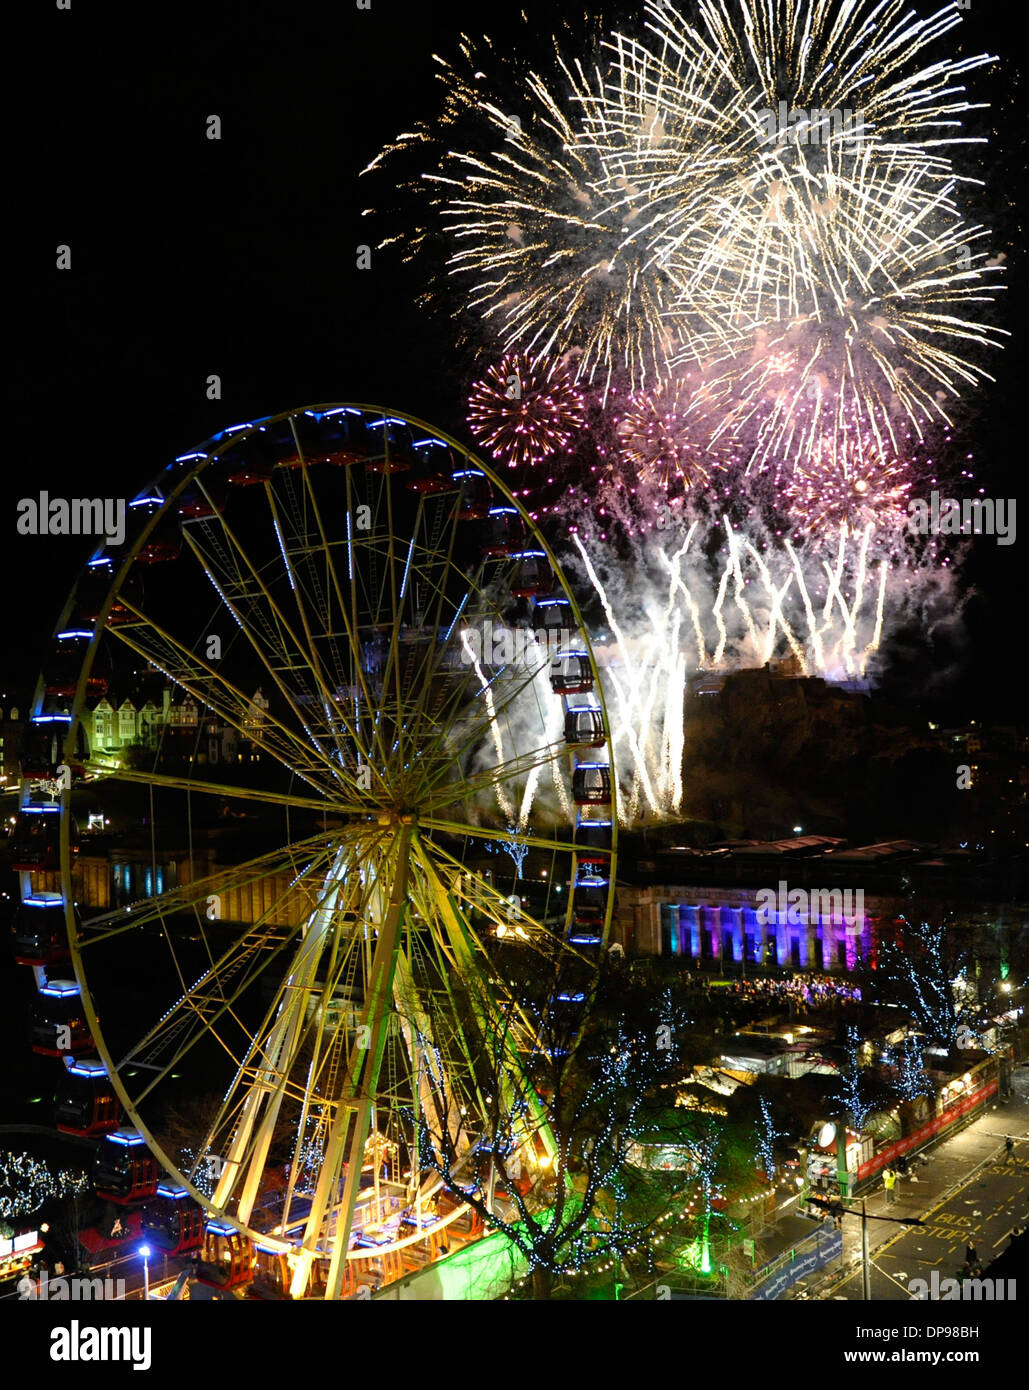 Up to 80,000 people are in Princes Street, Edinburgh, Scotland (31 Dec) as part of the Hogmanay Celebrations 2014. - Stock Image